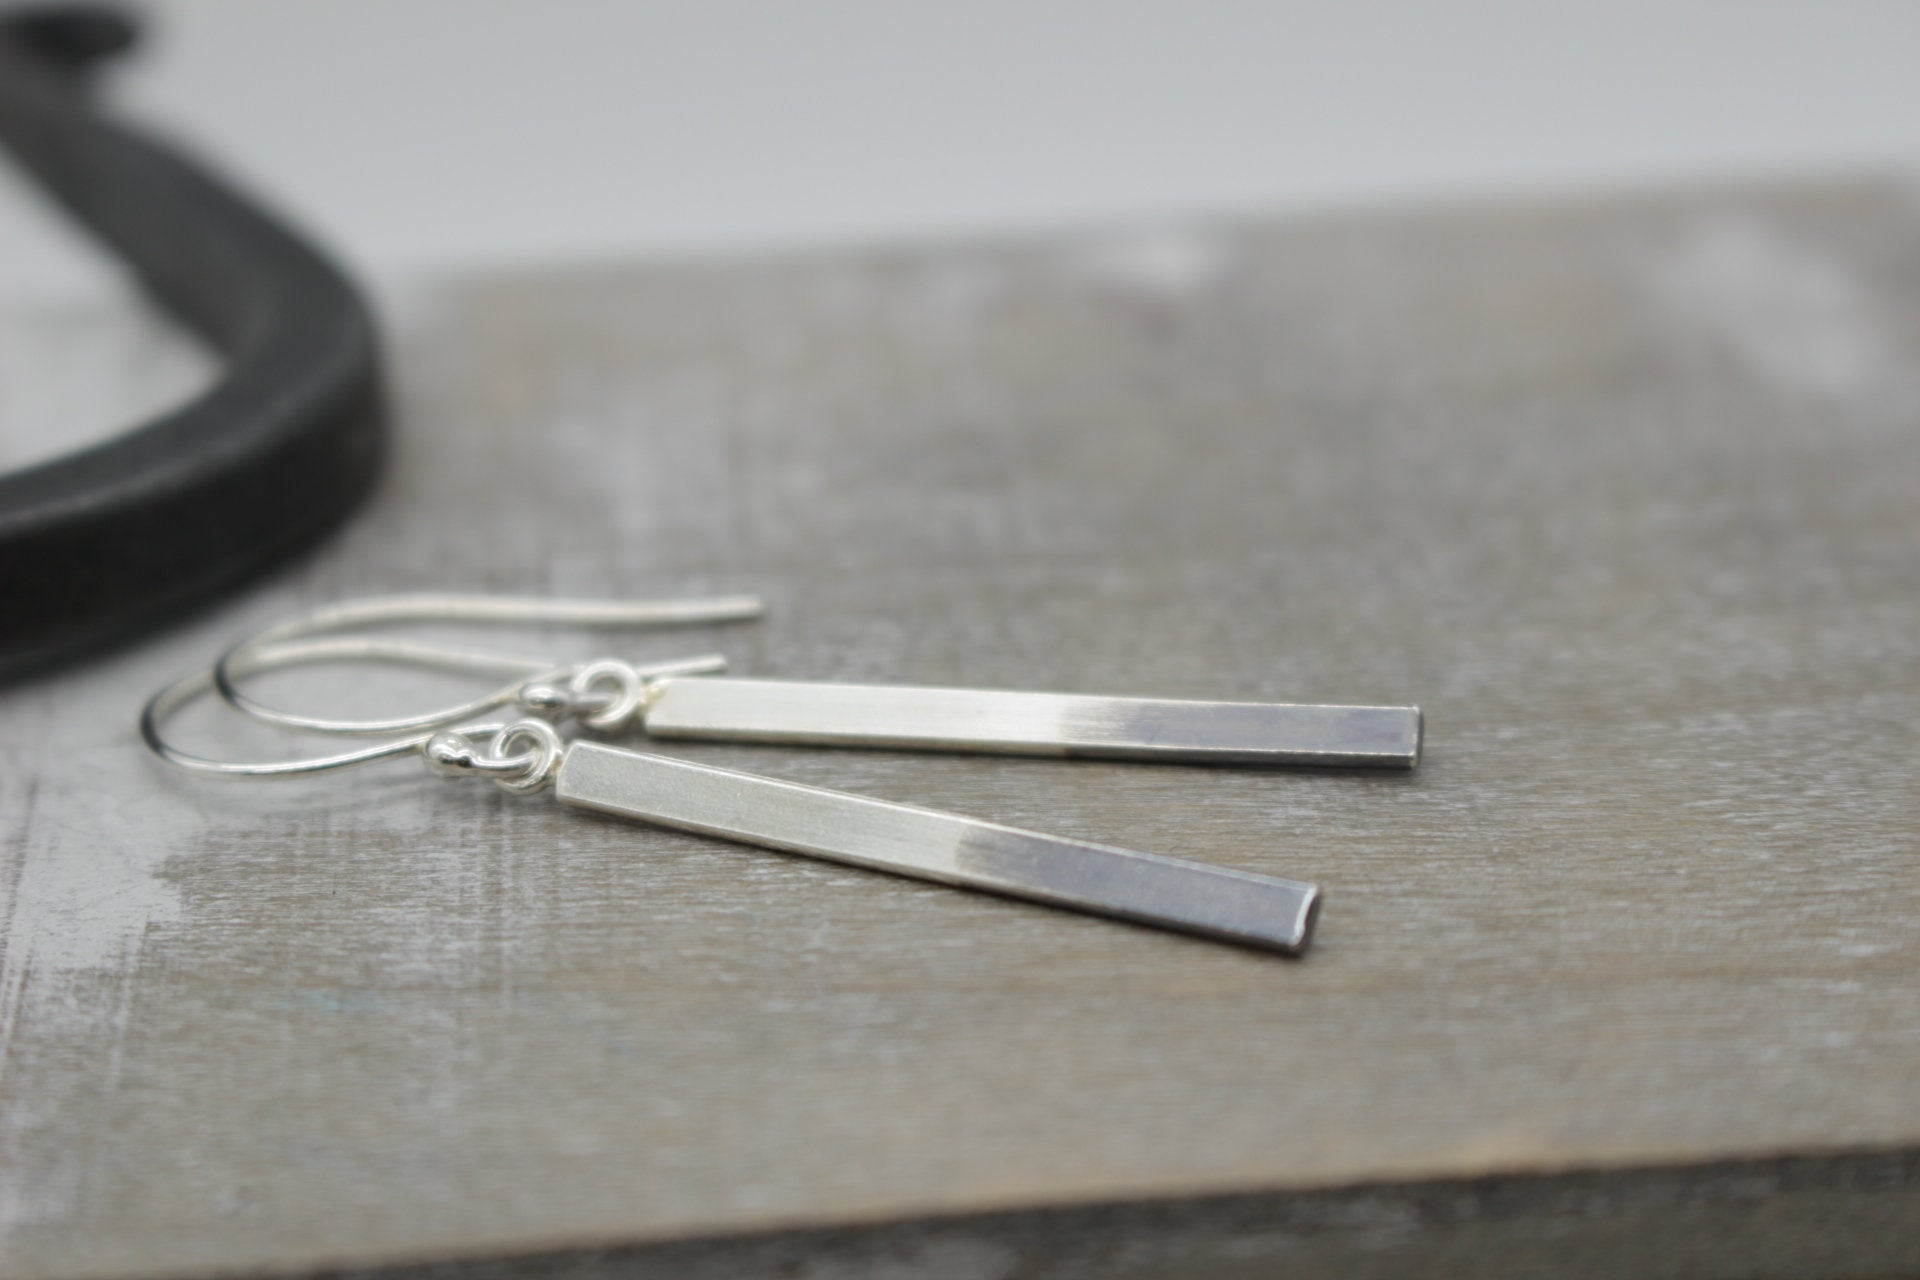 Ombre Sterling Silver Bar Earrings - Dangle Earrings - Gift for her - Jewelry Sale - Minimalist Earrings